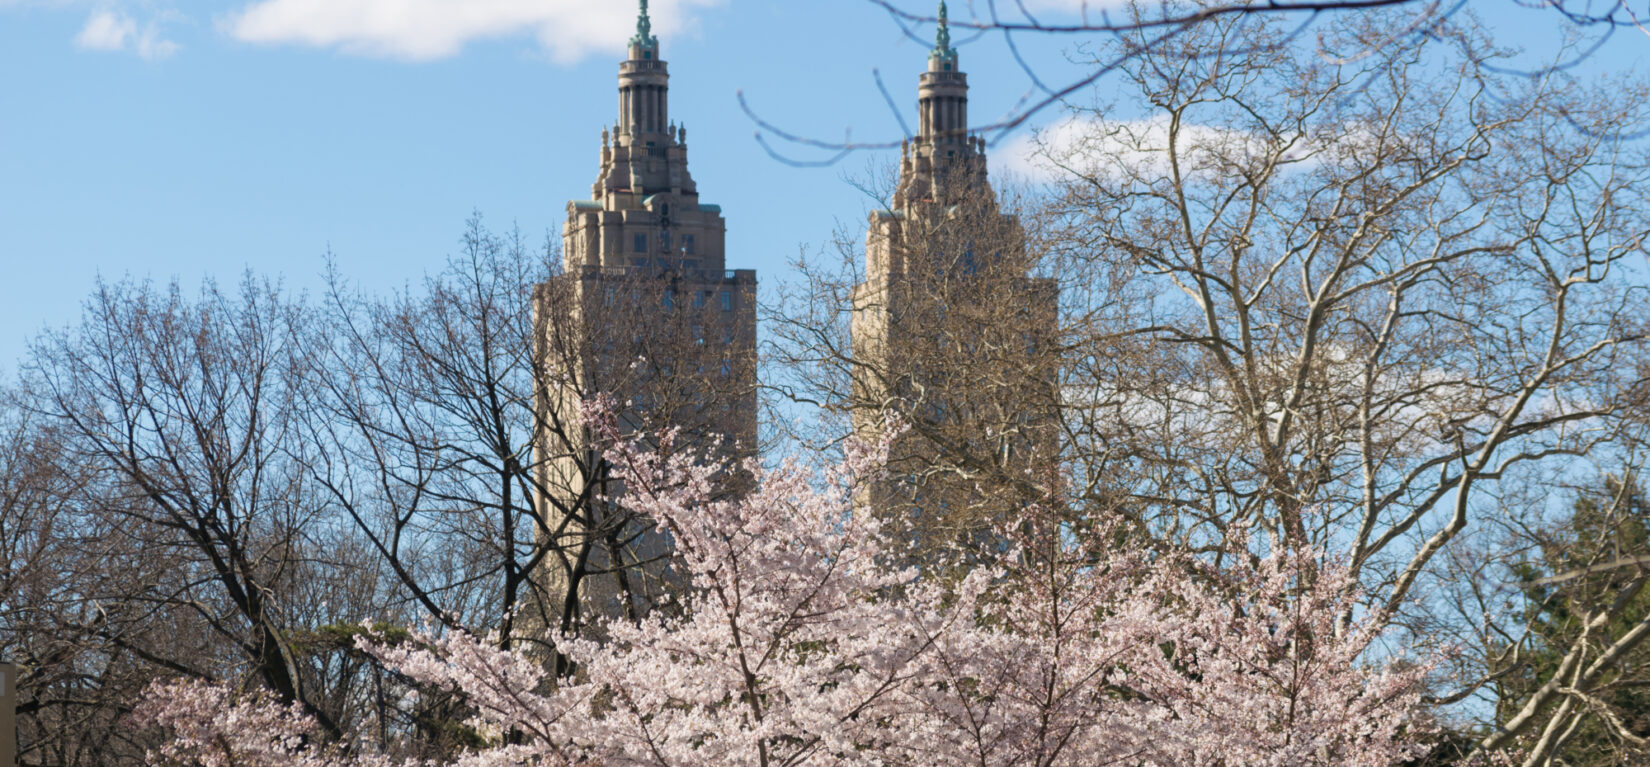 Cherry blossoms obscure the skyline of Manhattan's West Side